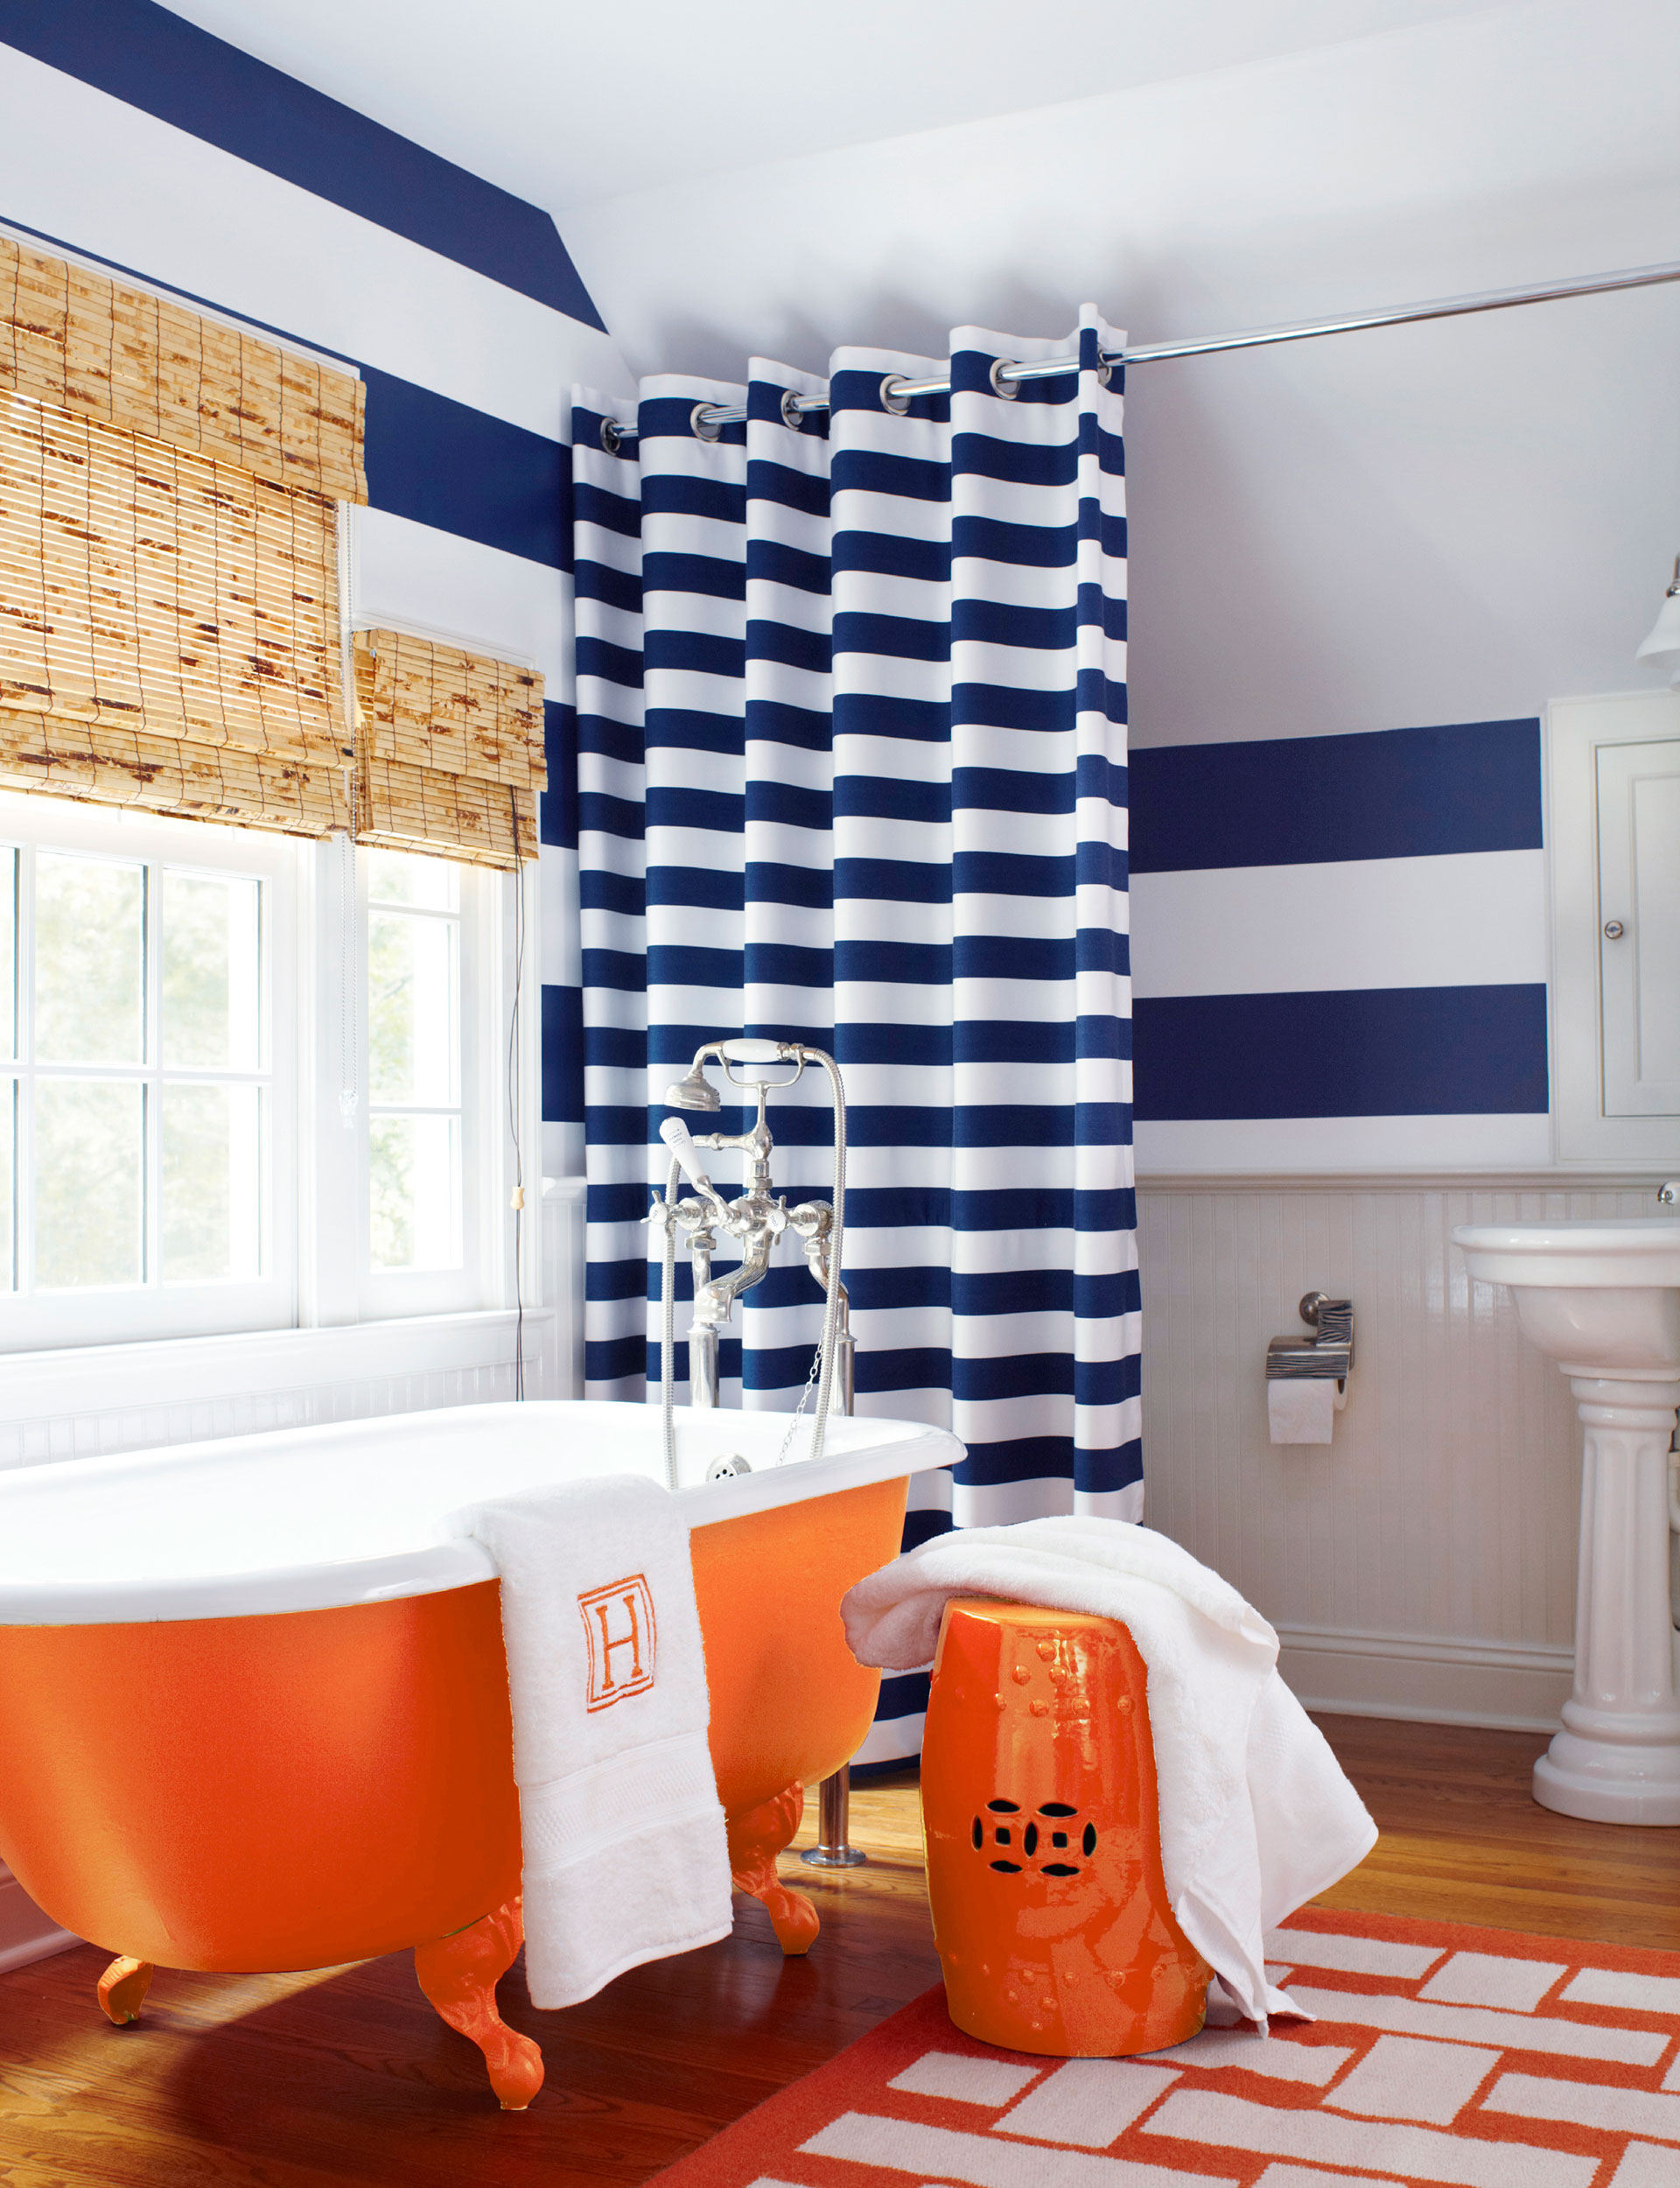 Diy bathroom updates and decor cheap ways to renovate a for Inexpensive bathroom updates